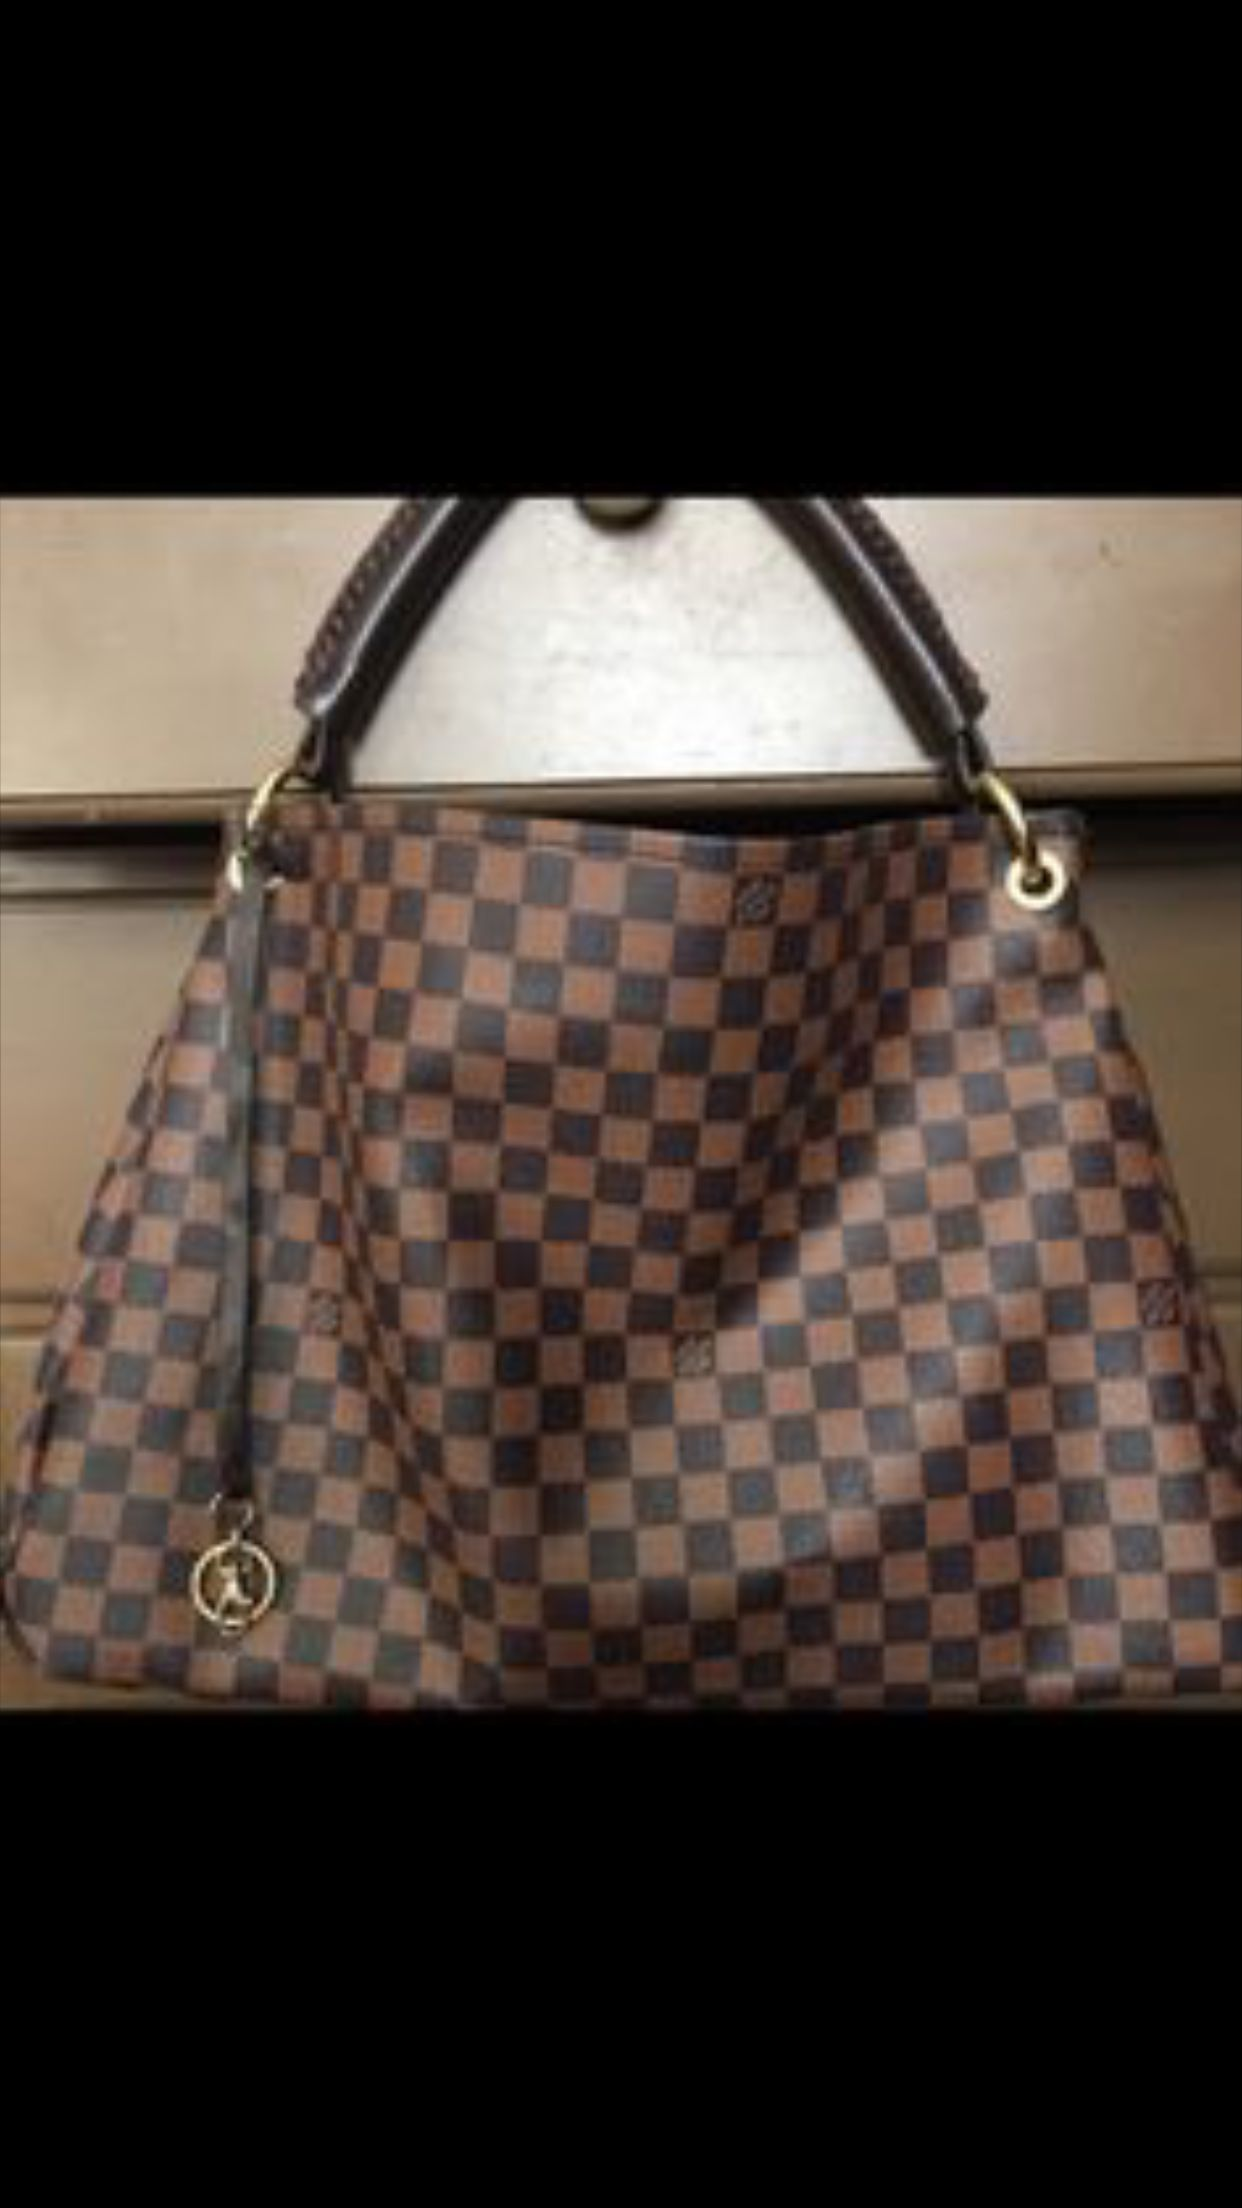 521d177bb LV Artsy Damier Ebene | L V in 2019 | Louis vuitton, Louis vuitton ...